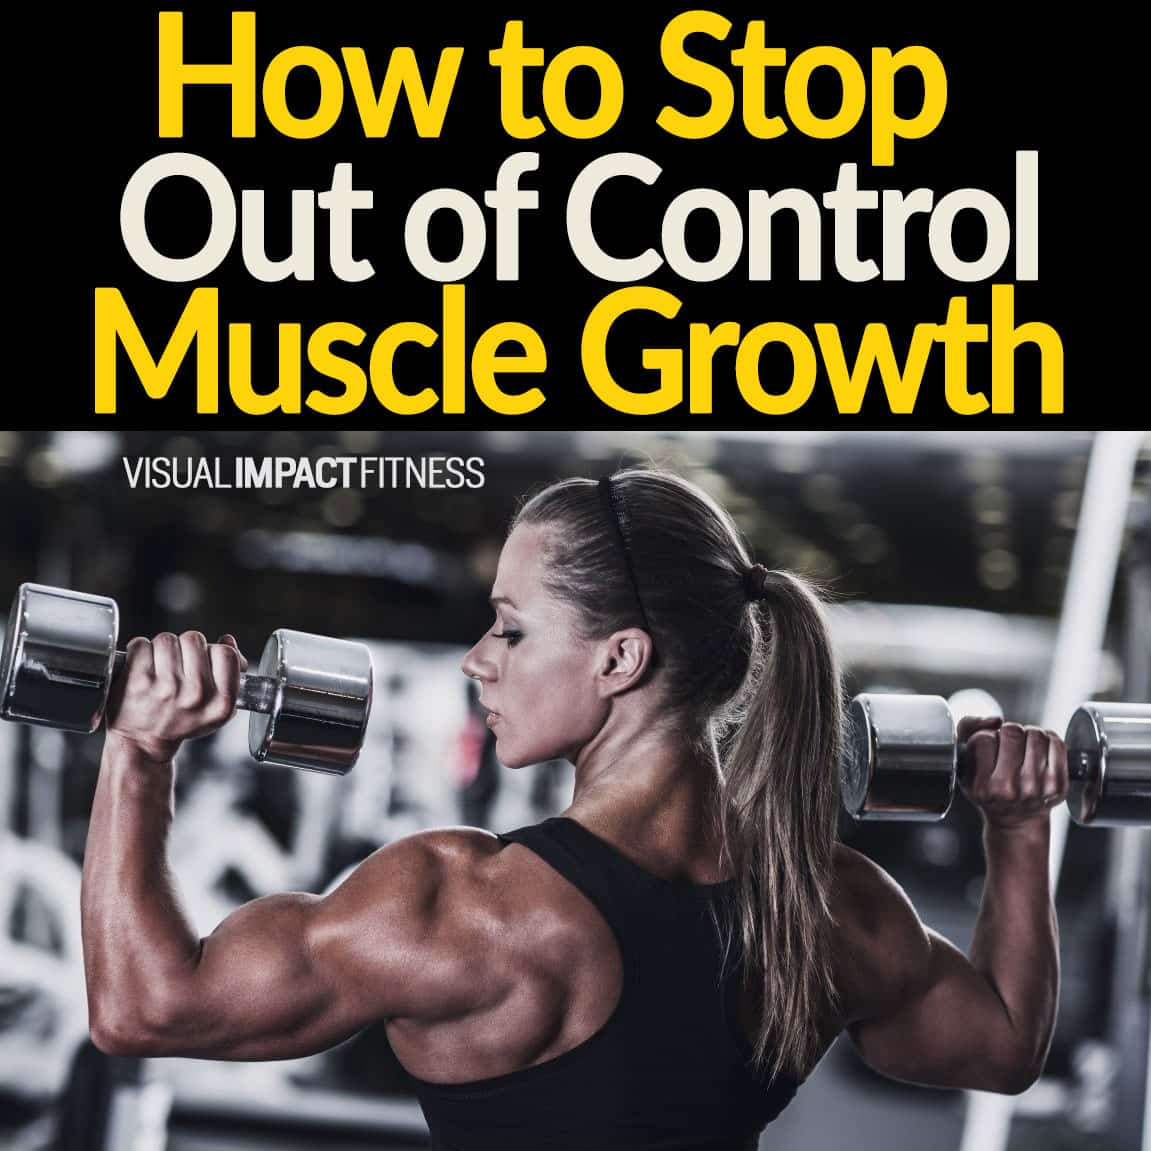 How to Stop Out of Control Muscle Growth